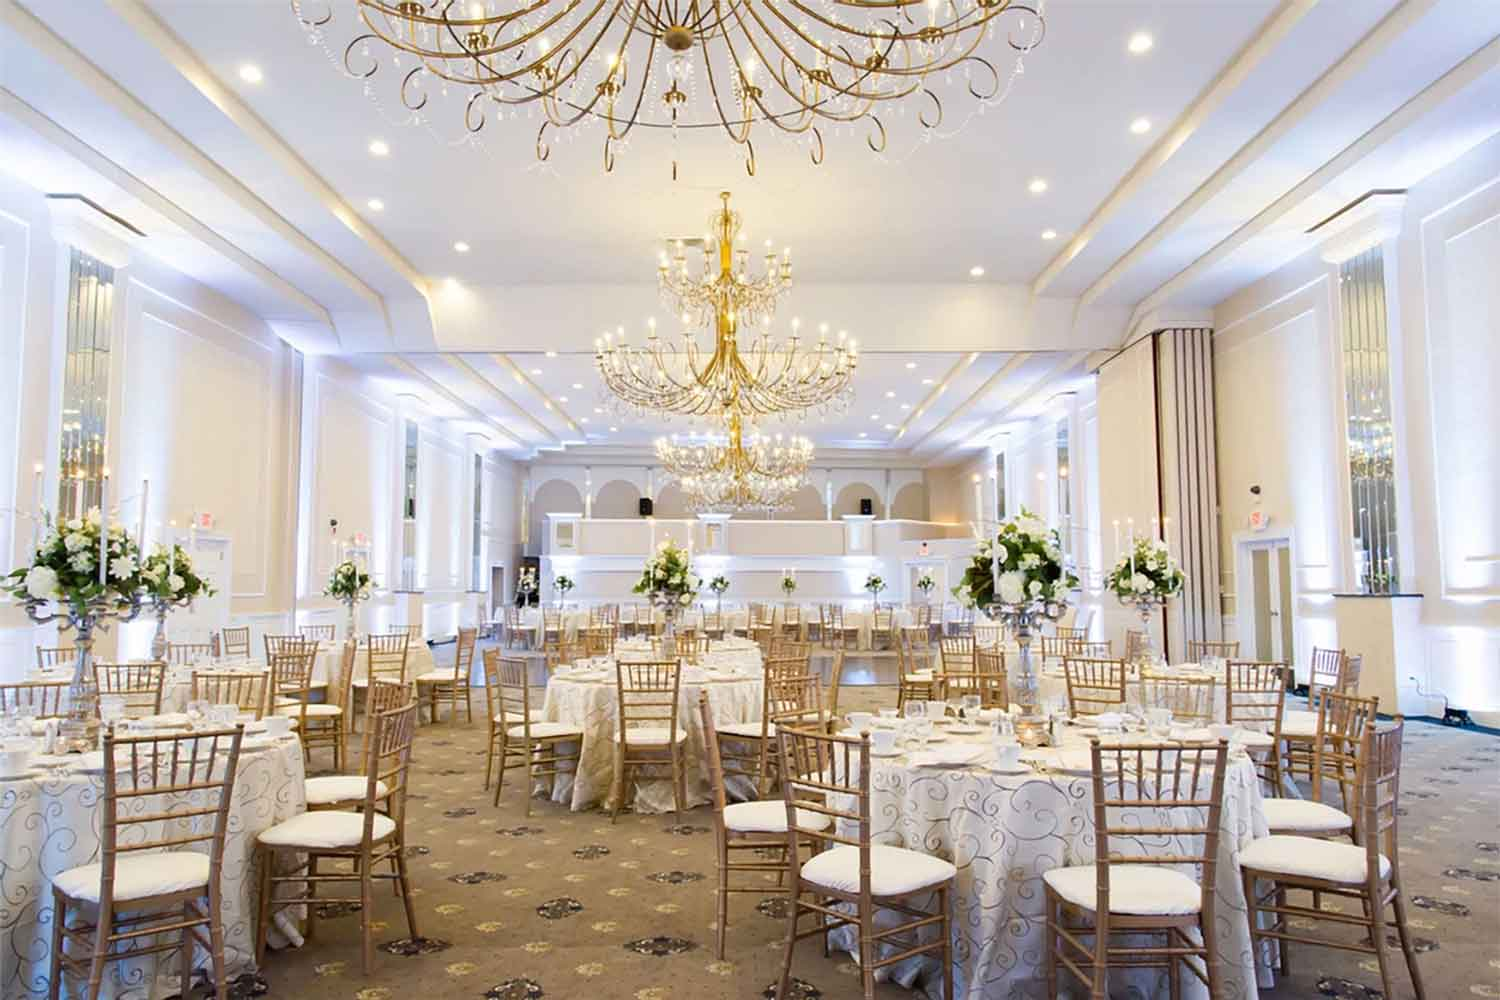 Regal Ballroom main banquet hall, located in Philadelphia PA